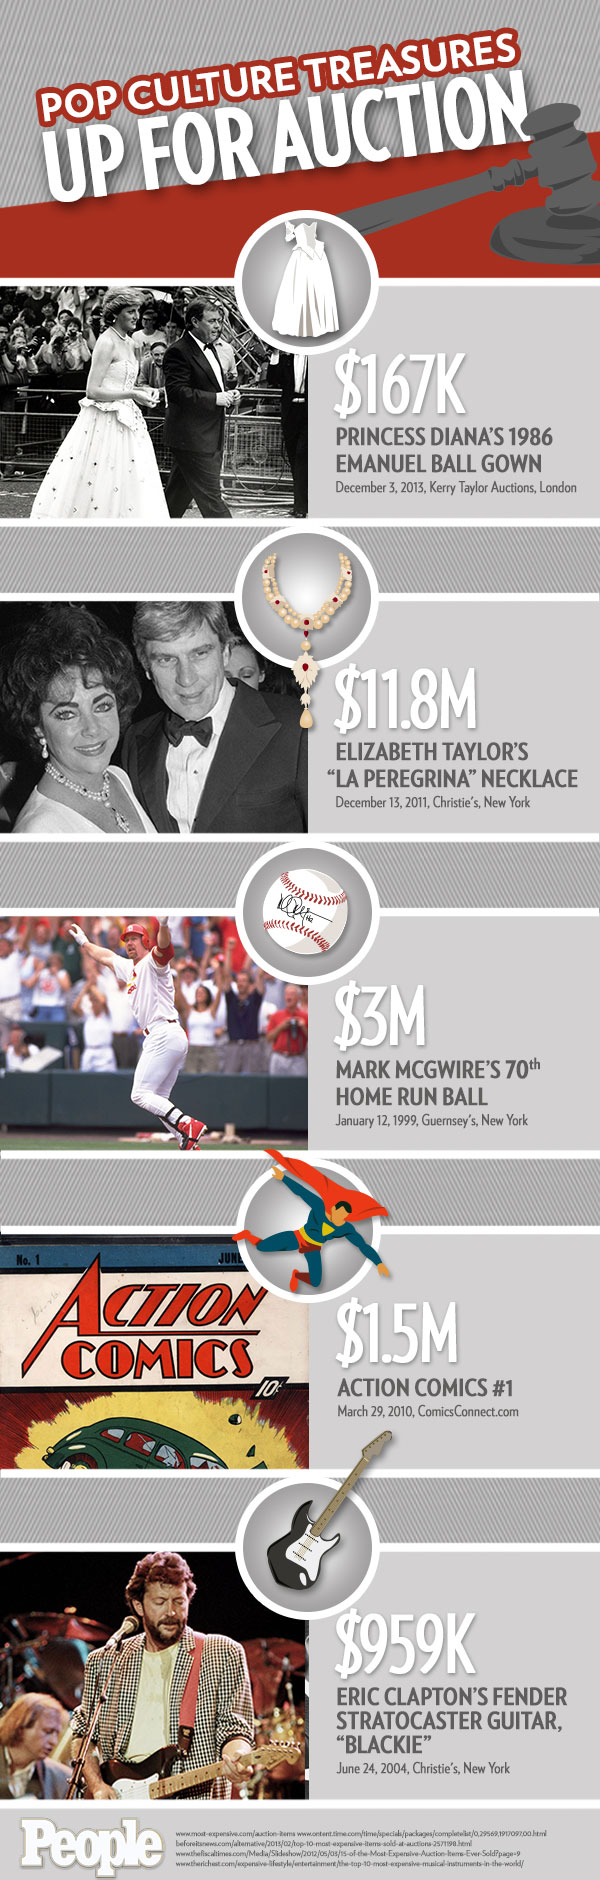 INFOGRAPHIC: Princess Diana's Beloved Ball Gown Just Sold for How Much?| Elizabeth Taylor, Eric Clapton, Mark McGwire, Princess Diana